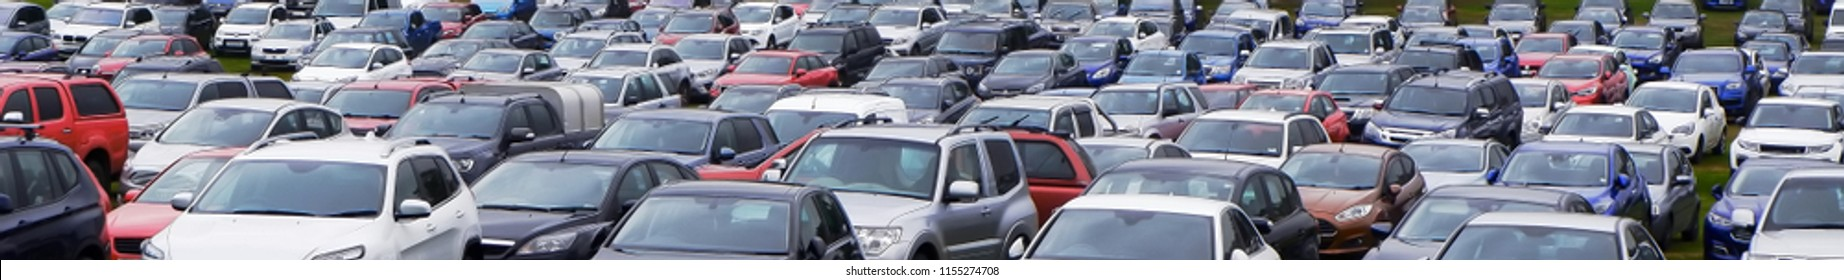 """""""Panoramic view of many parking cars over the tops"""""""